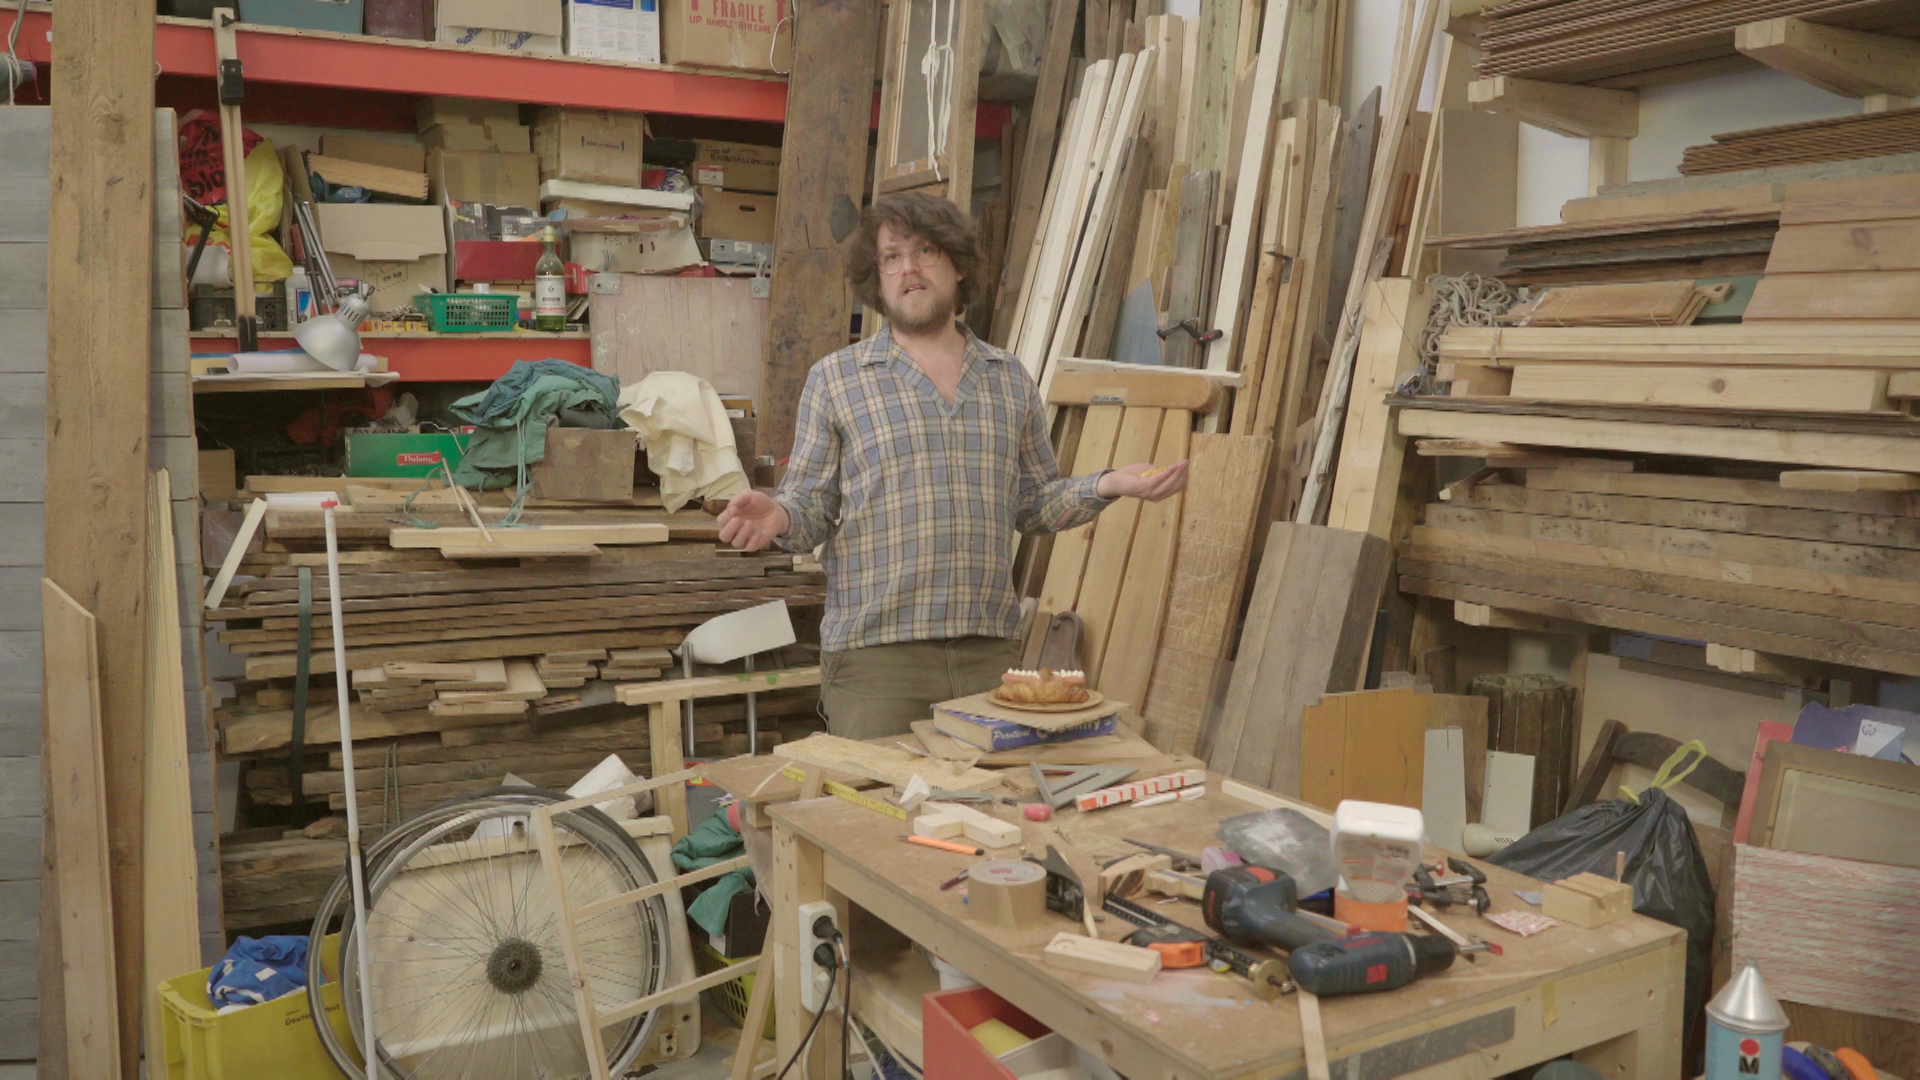 CONGLOMERATE, still from The New Domestic Woodshop, directed by Ethan Hayes-Chute and Derek Howard.